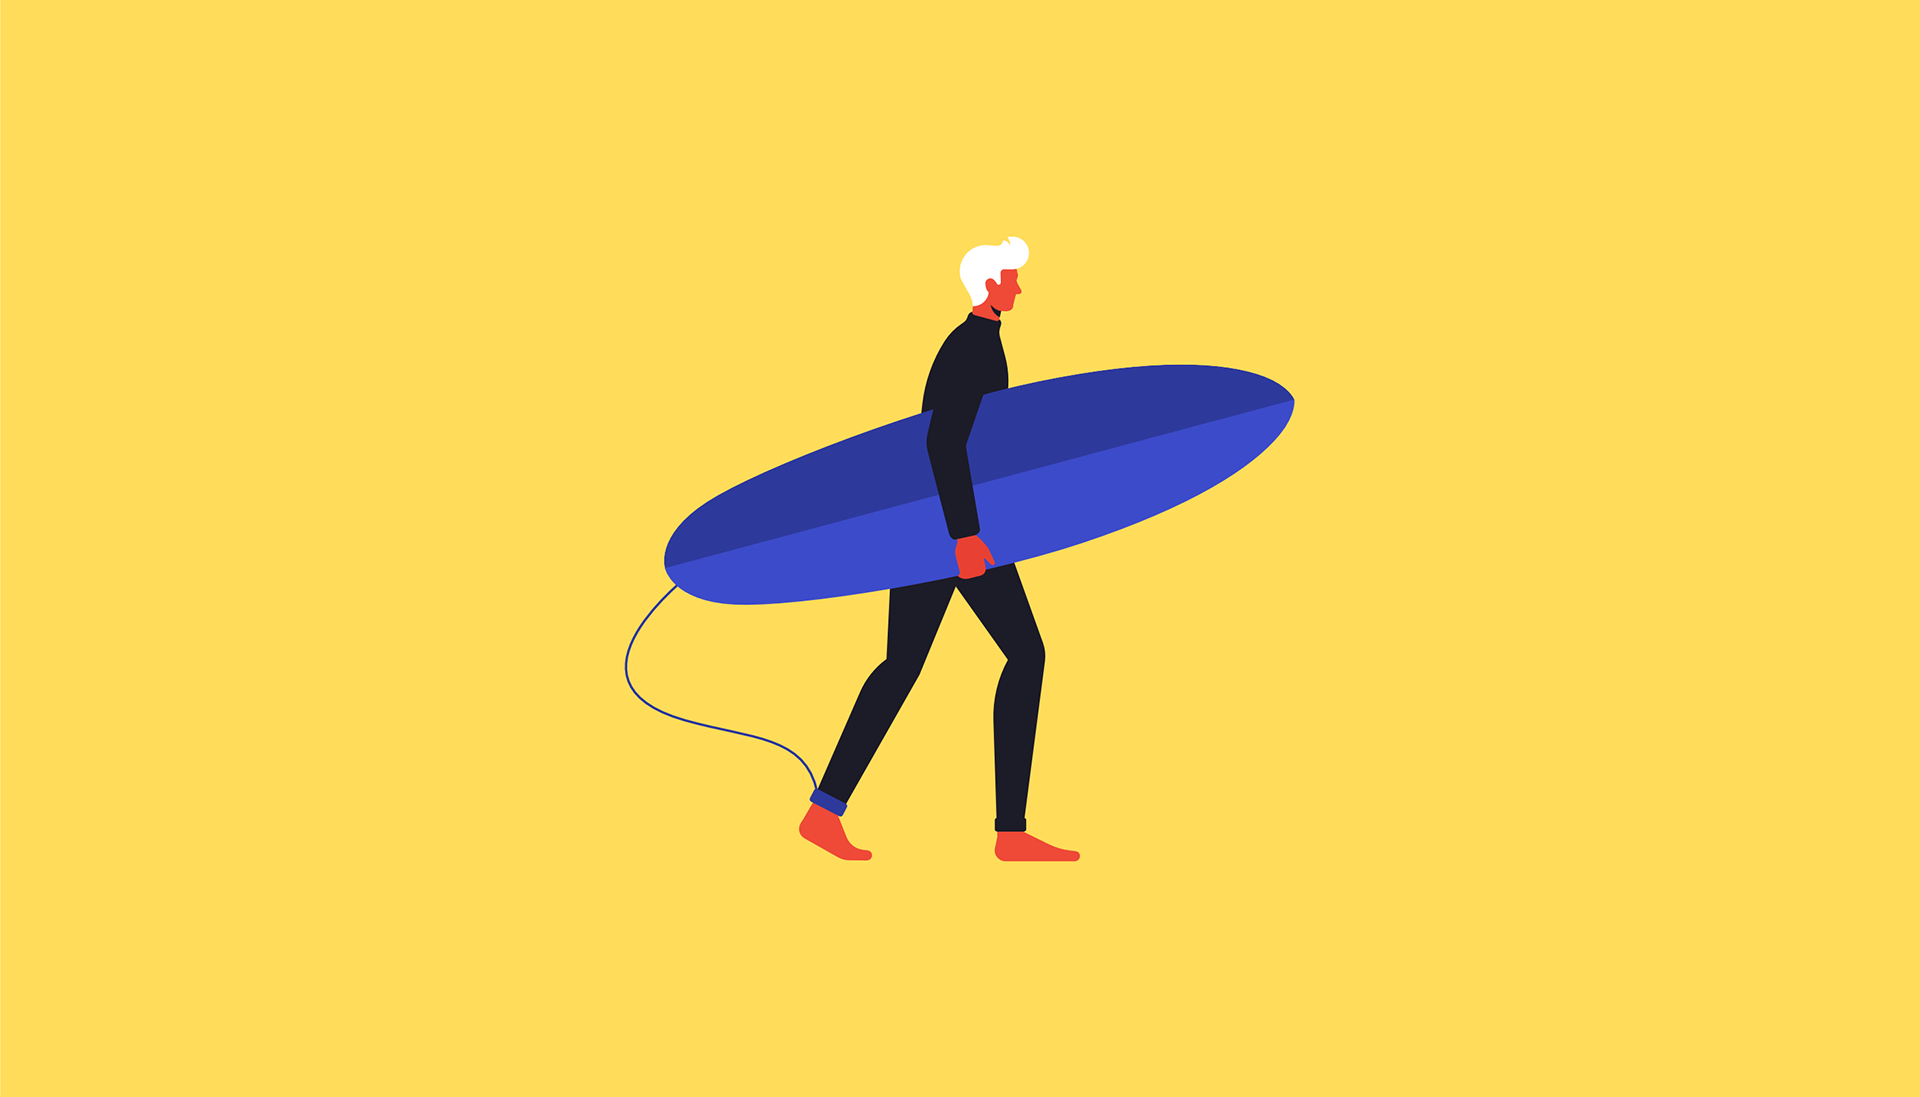 Colorful Flat Design Illustration by Justina Lei